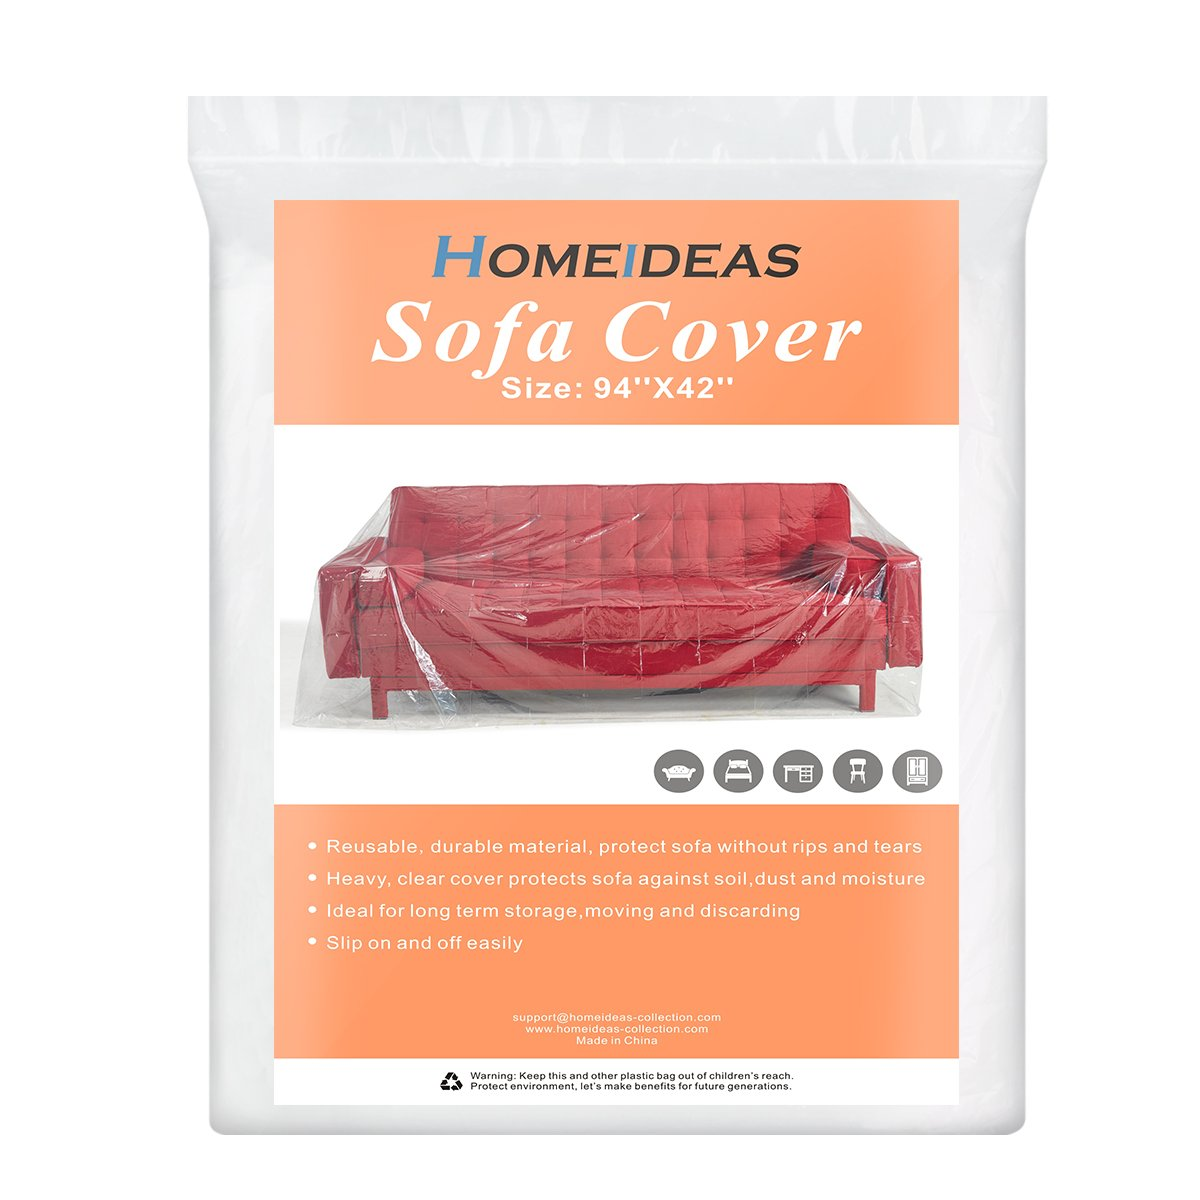 HOMEIDEAS 5 Mil Extra Thick Clear Sofa/Furniture Cover for Moving & Long Term Storage, Tear Resistant, Fits 94''x 42''